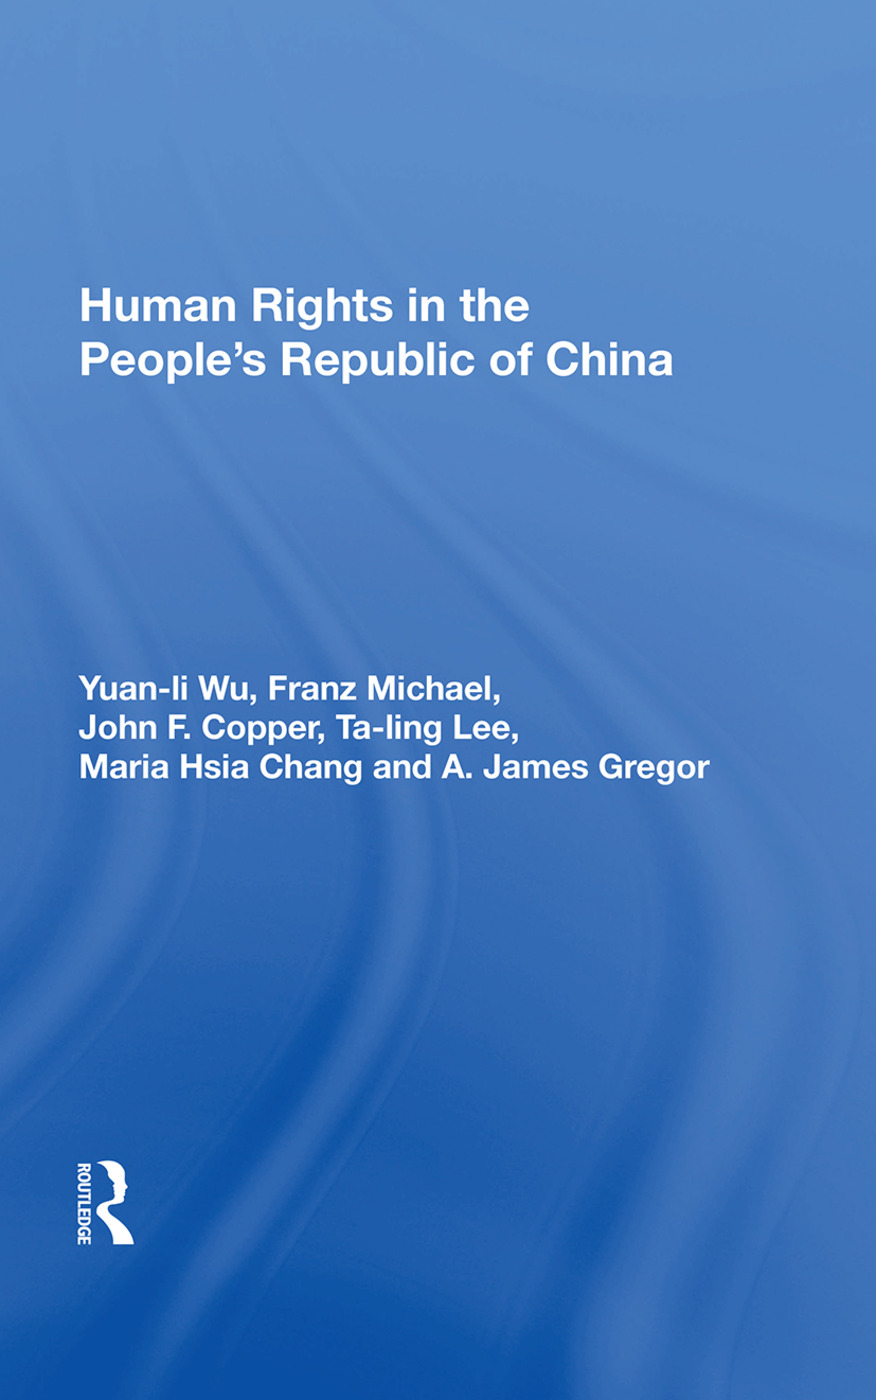 Human Rights in the People's Republic of China